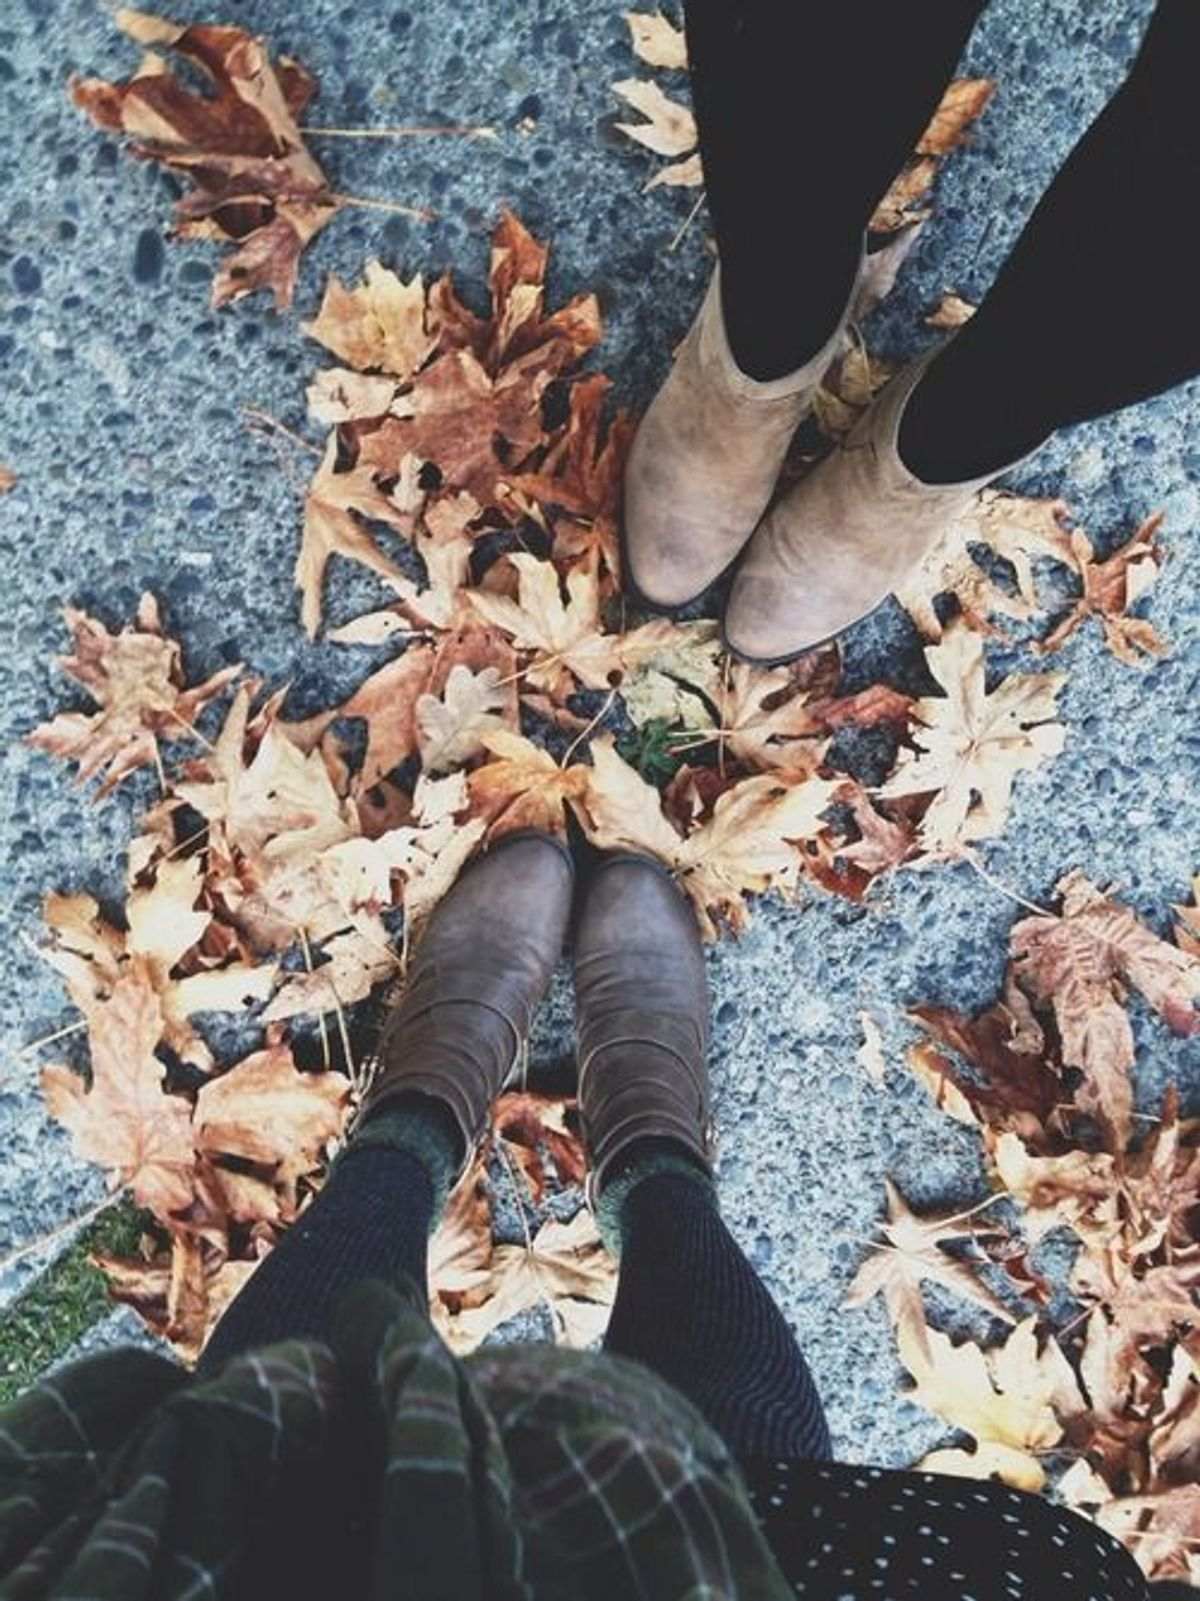 The 7 Stages Of A Basic White Girl In Fall